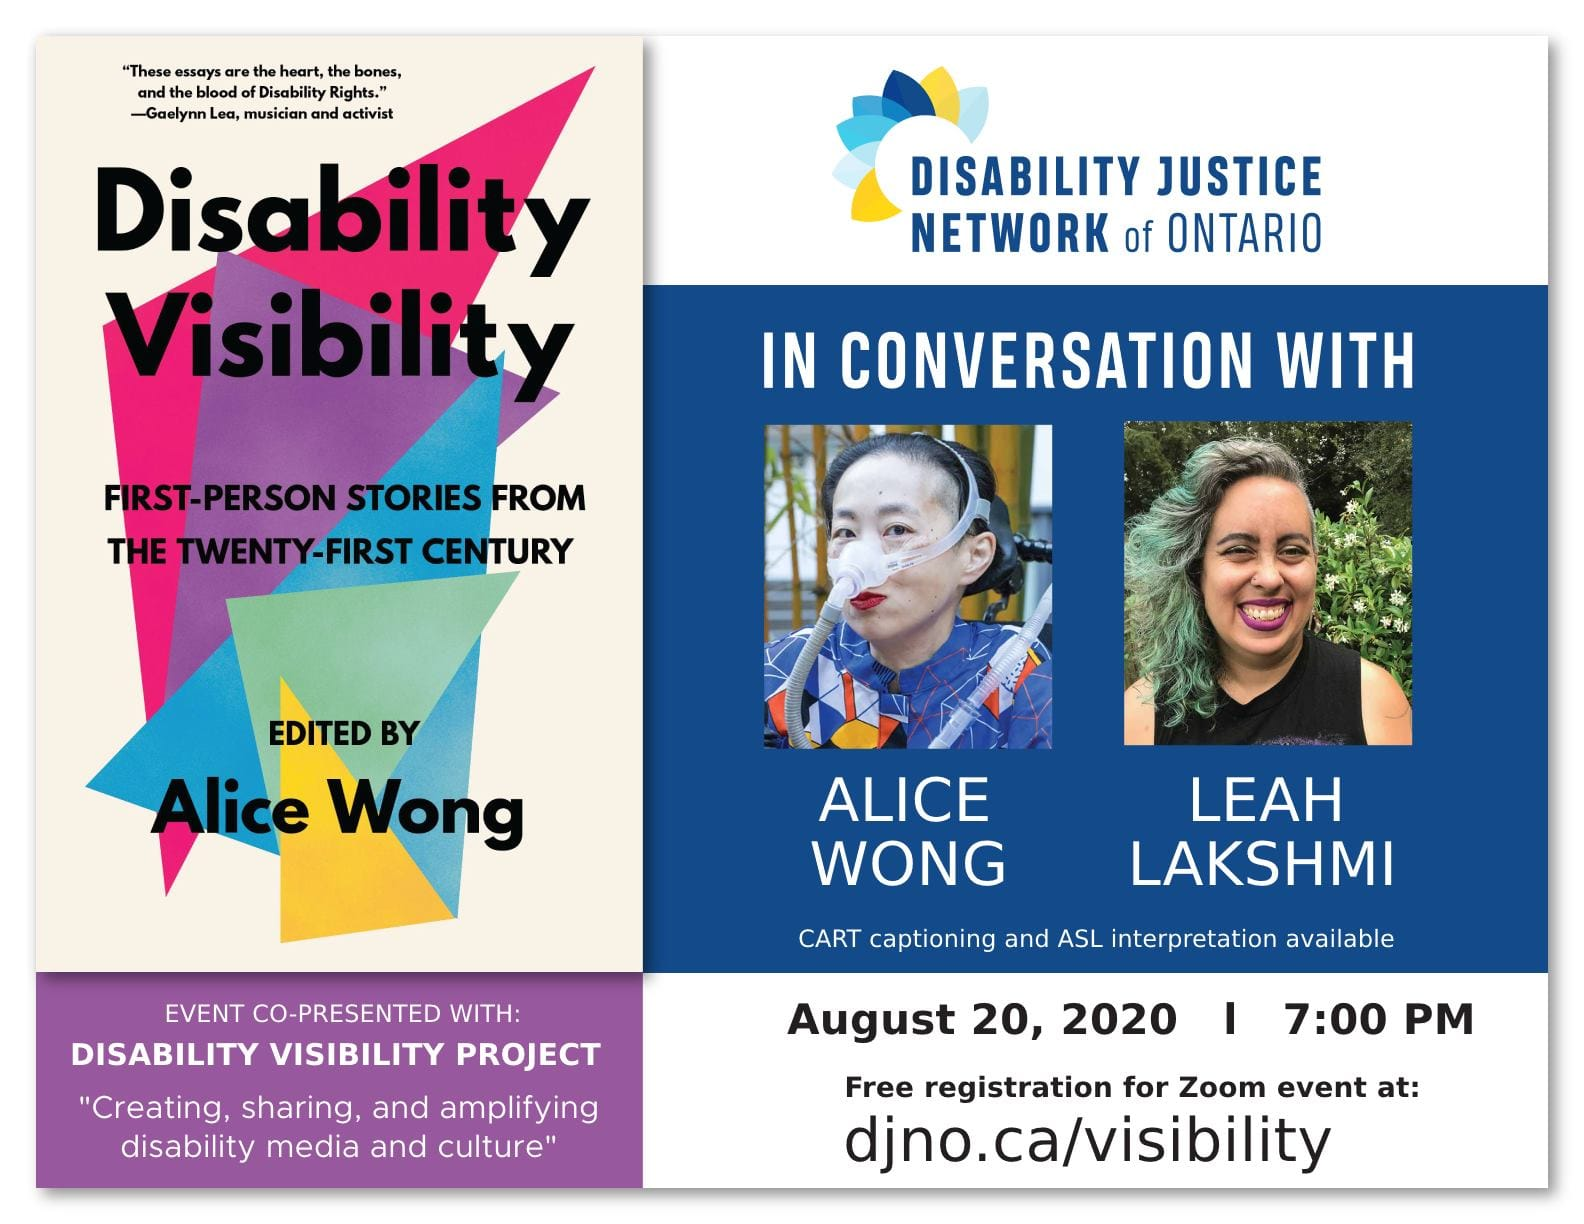 On the left is a book titled 'Disability Visibility: First Person Stories from the 21st Century Edited by Alice Wong' the book cover has overlapping triangles in a variety of bright colors with black text overlaying them and an off-white background. Book cover by Madeline Partner. The image is the logo of the Disability Justice Network of Ontario (DJNO), which has the words Disability Justice Network of Ontario written in dark blue. The words Disability Justice Network are in bold, and the words of Ontario are not. Small flower petals are positioned like a crown over the words Disability and Network, in colours yellow, light blue, and dark blue.